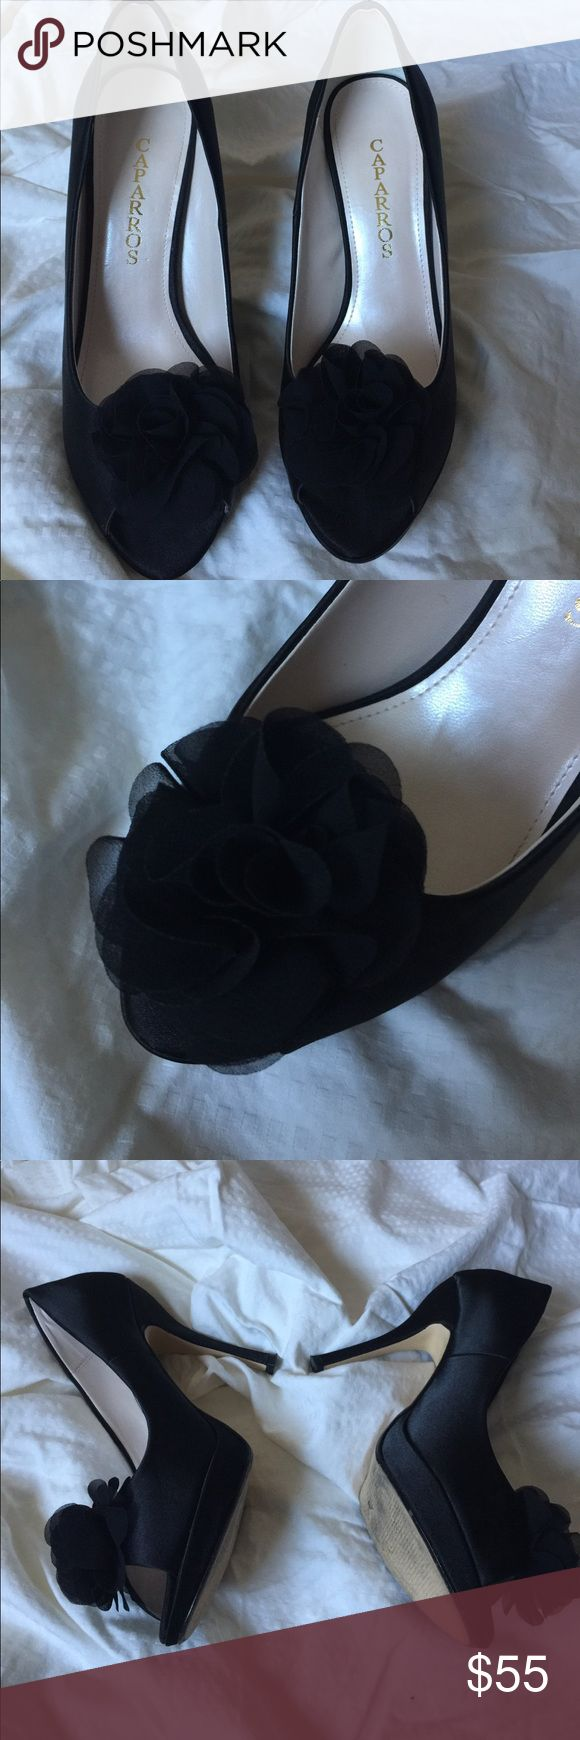 Caparros Black Peep Toe Heels Beautiful black peep toe pumps with flower detail on the toe only worn once comes in original box size 8 Shoes Heels